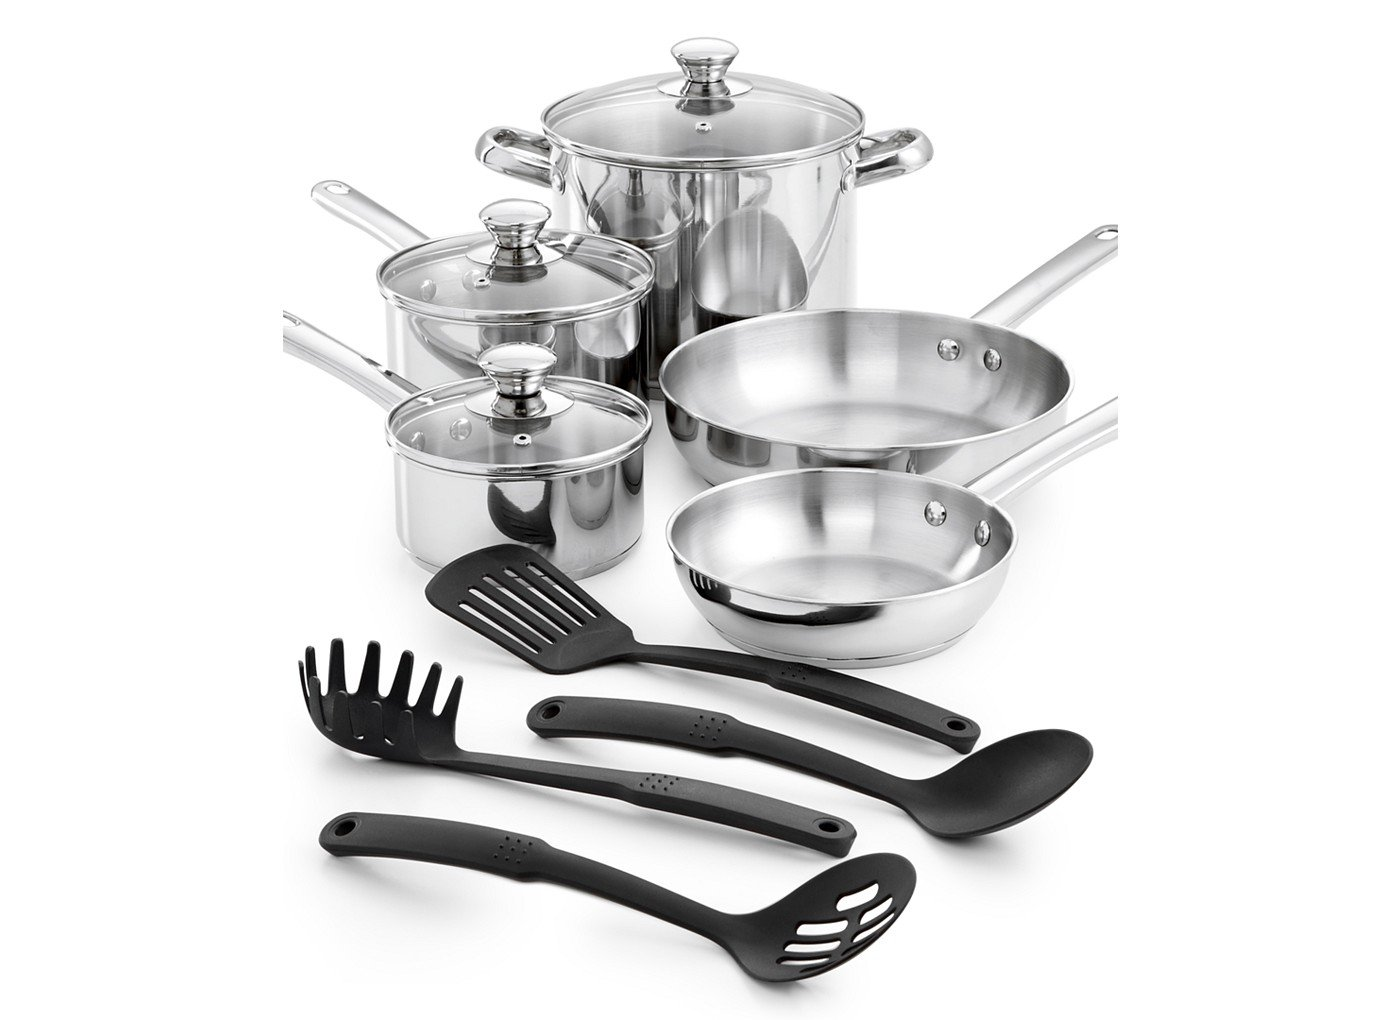 Amazon.com: Cooks Stainless Steel 12-pc. Cookware Set: Kitchen & Dining